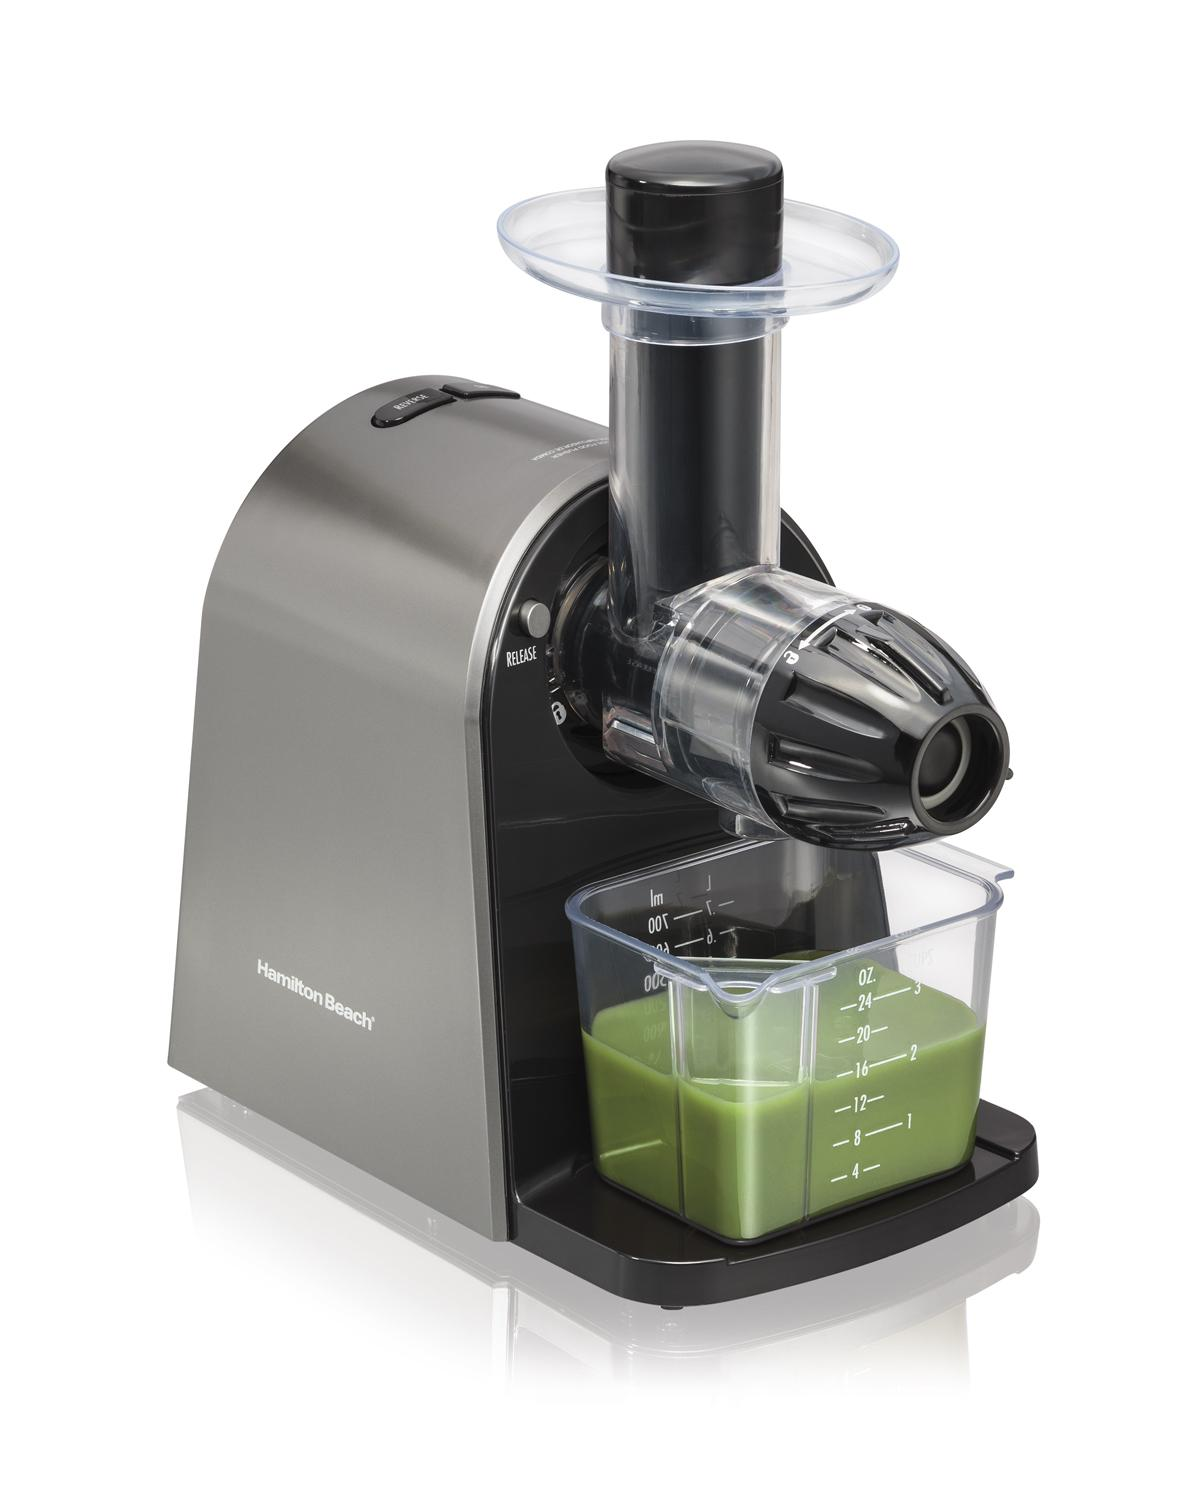 Compare Omega Slow Juicers : juicer breville commercial cuisinart omega extractor slow juicers electric vegetable masticating